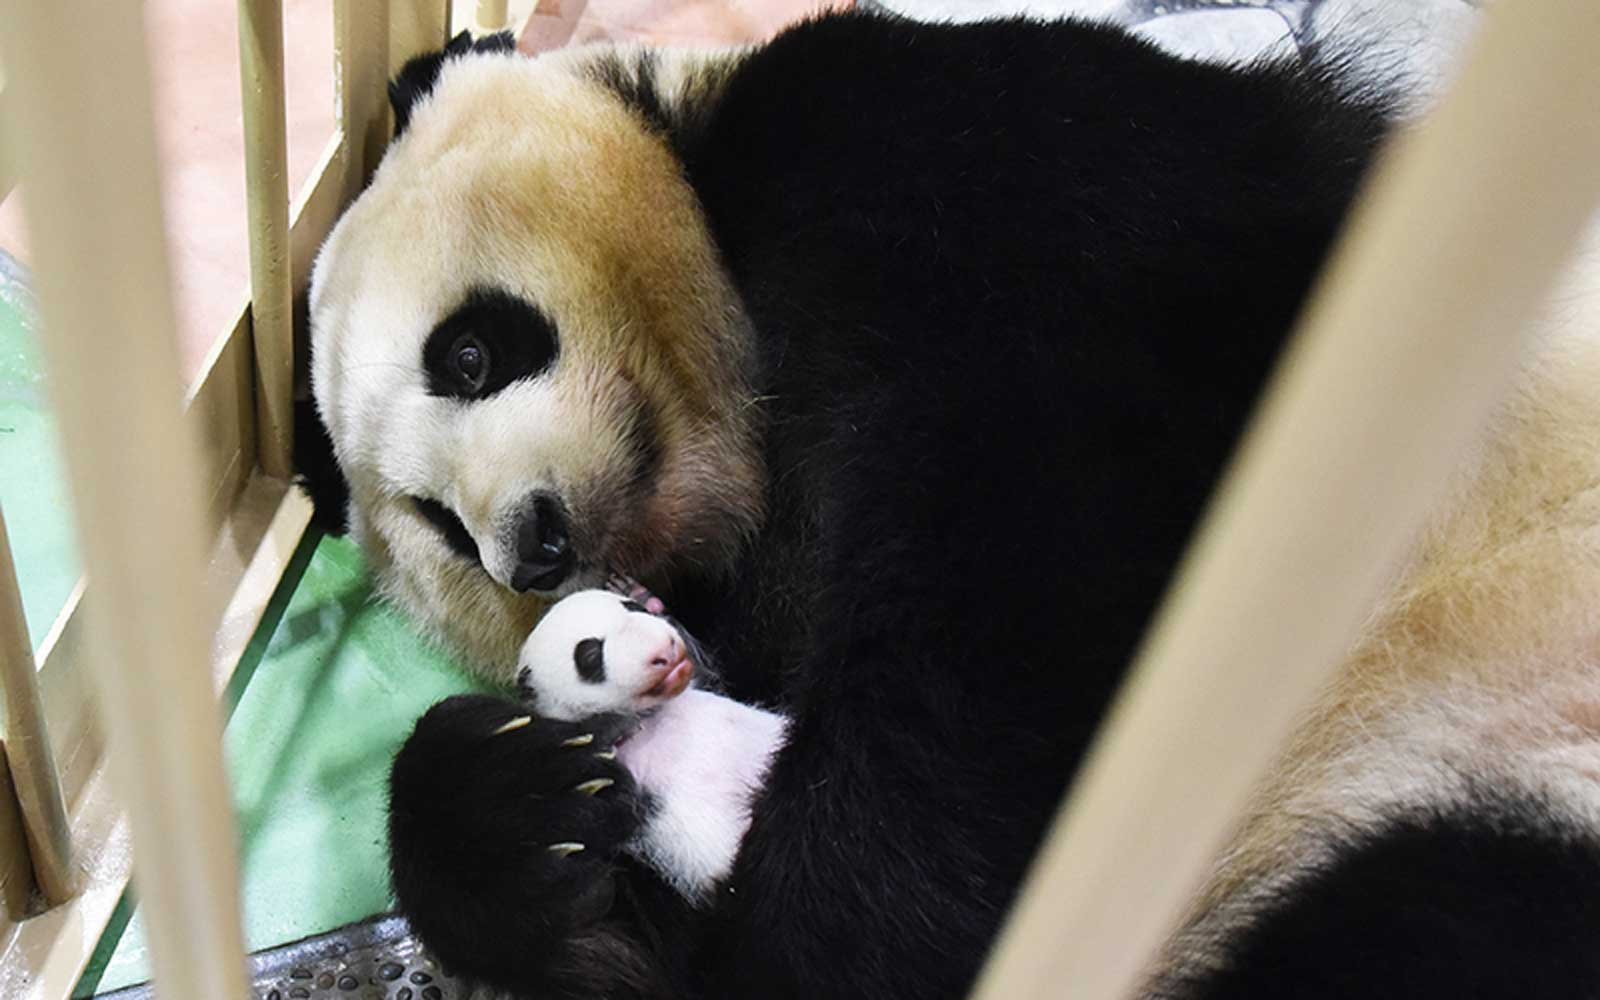 Japan Has a New Baby Giant Panda — and They Want You to Help Name It